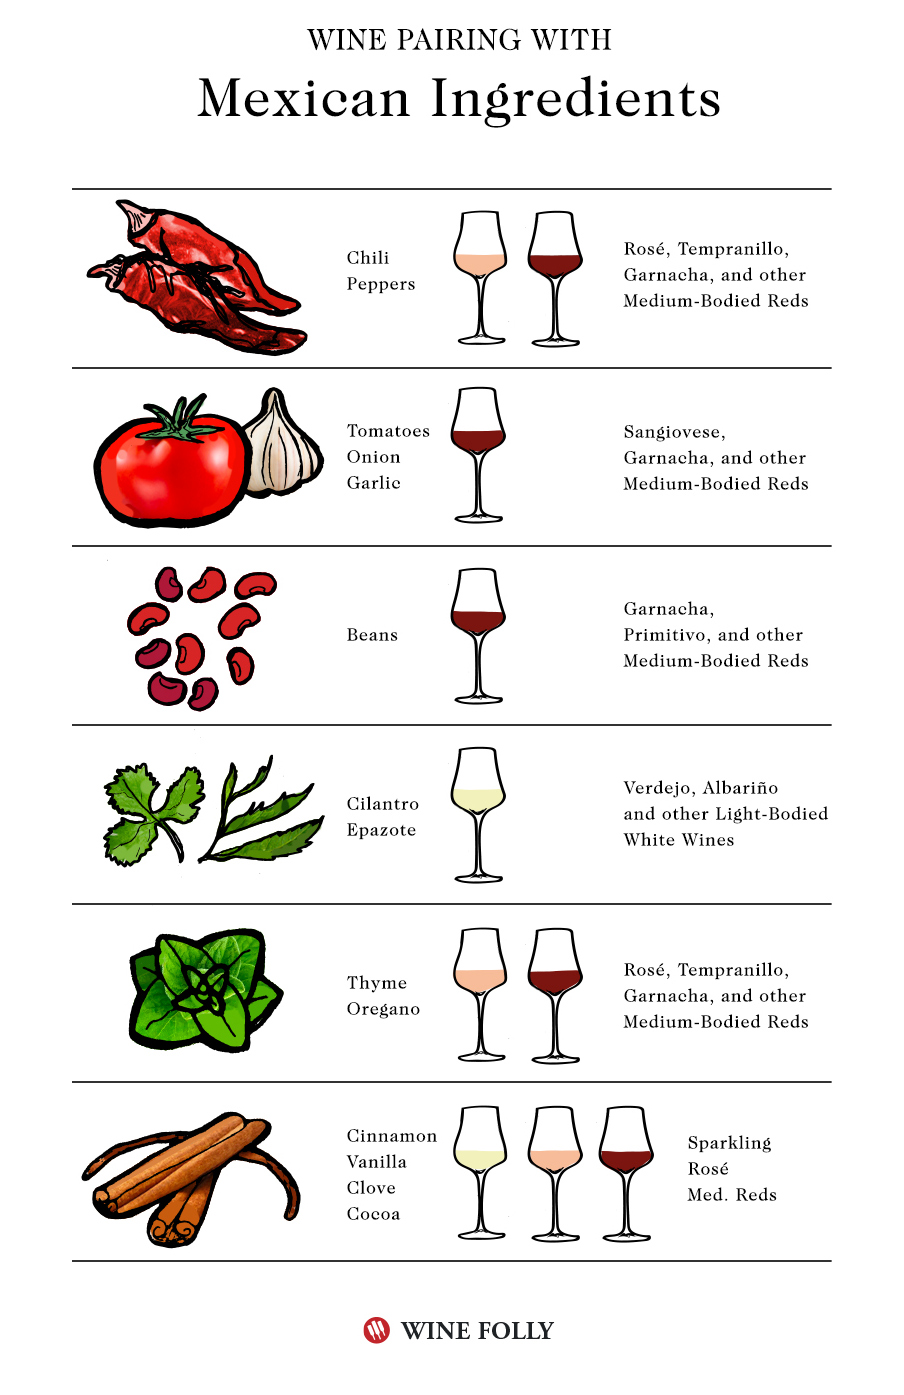 Mexican food wine pairings with ingredients - infographic by Wine Folly